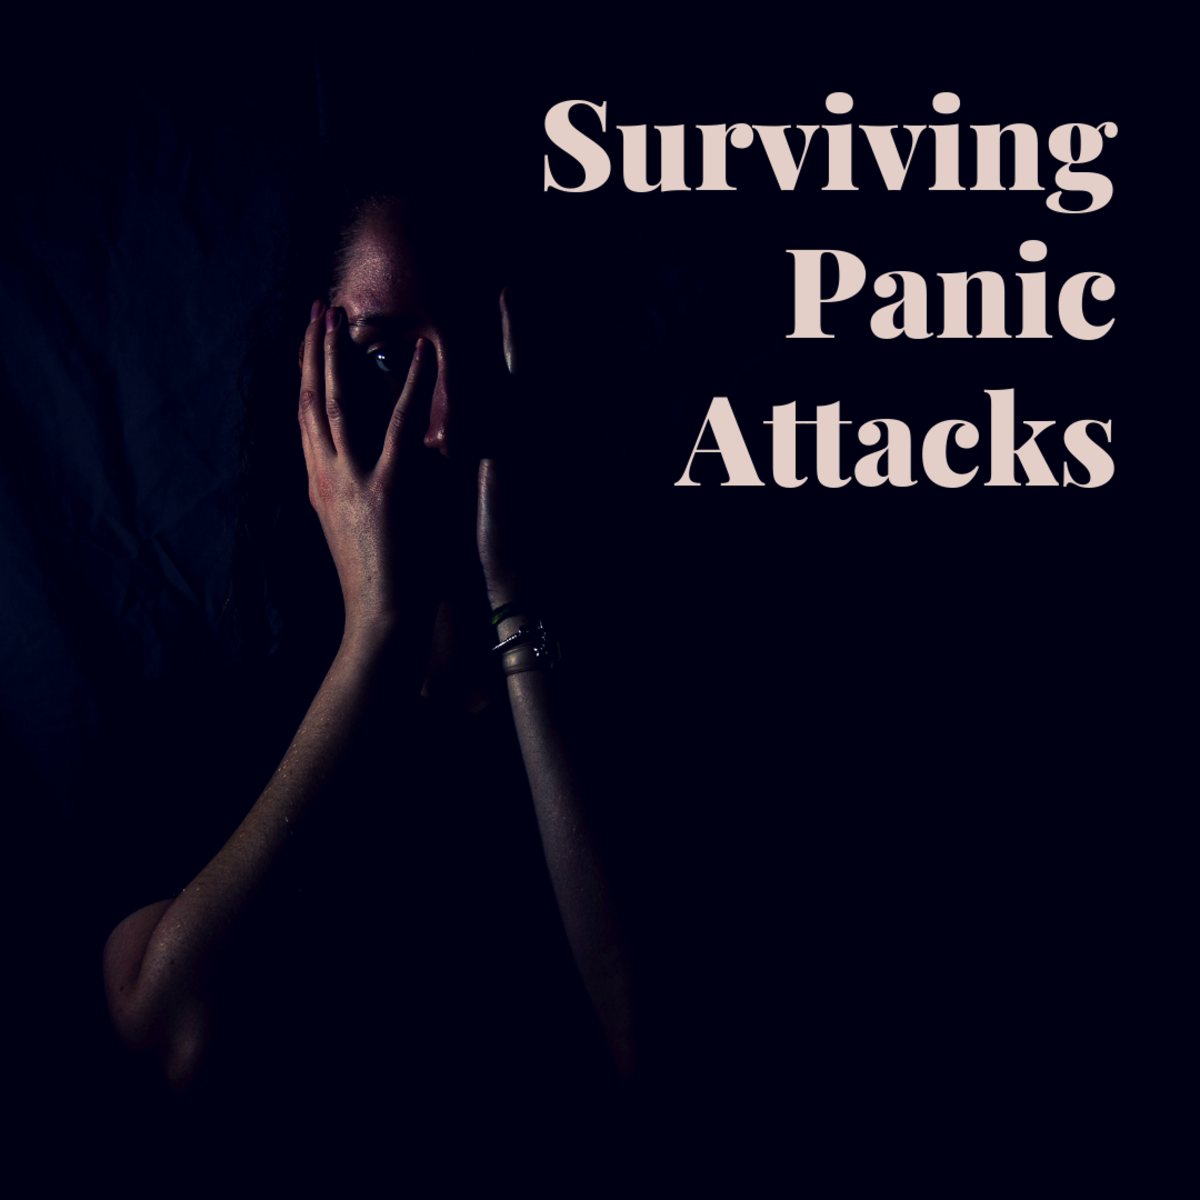 How to Survive Panic Attacks